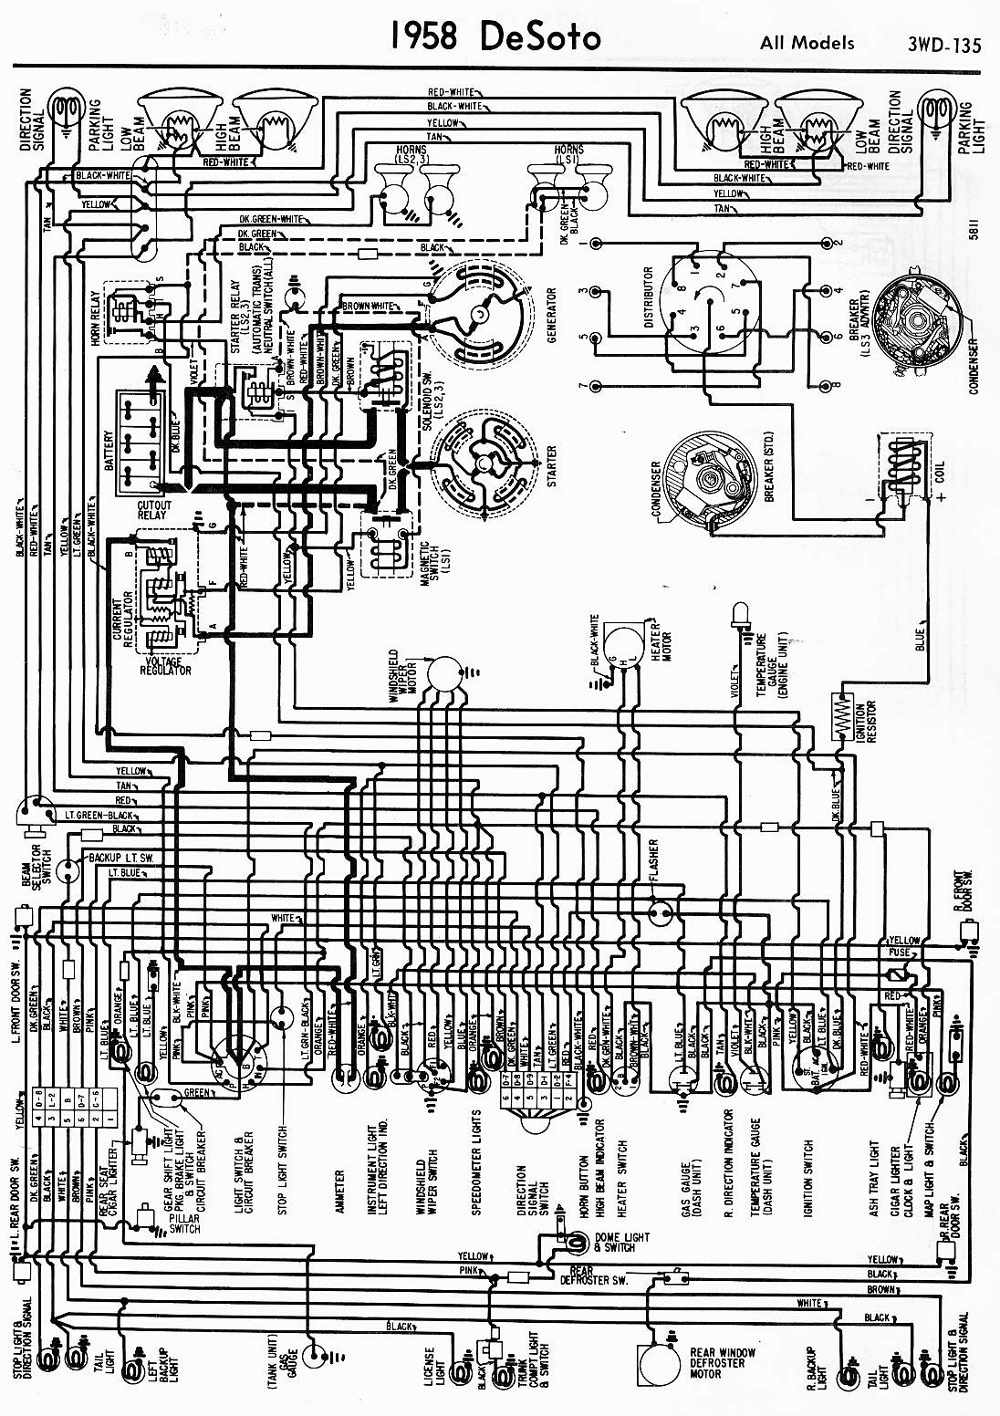 wiring diagrams of 1958 desoto all models?t=1508403756 1941 buick wiring diagram free 2006 chrysler pacifica wiring 2006 buick lacrosse wiring diagram at fashall.co